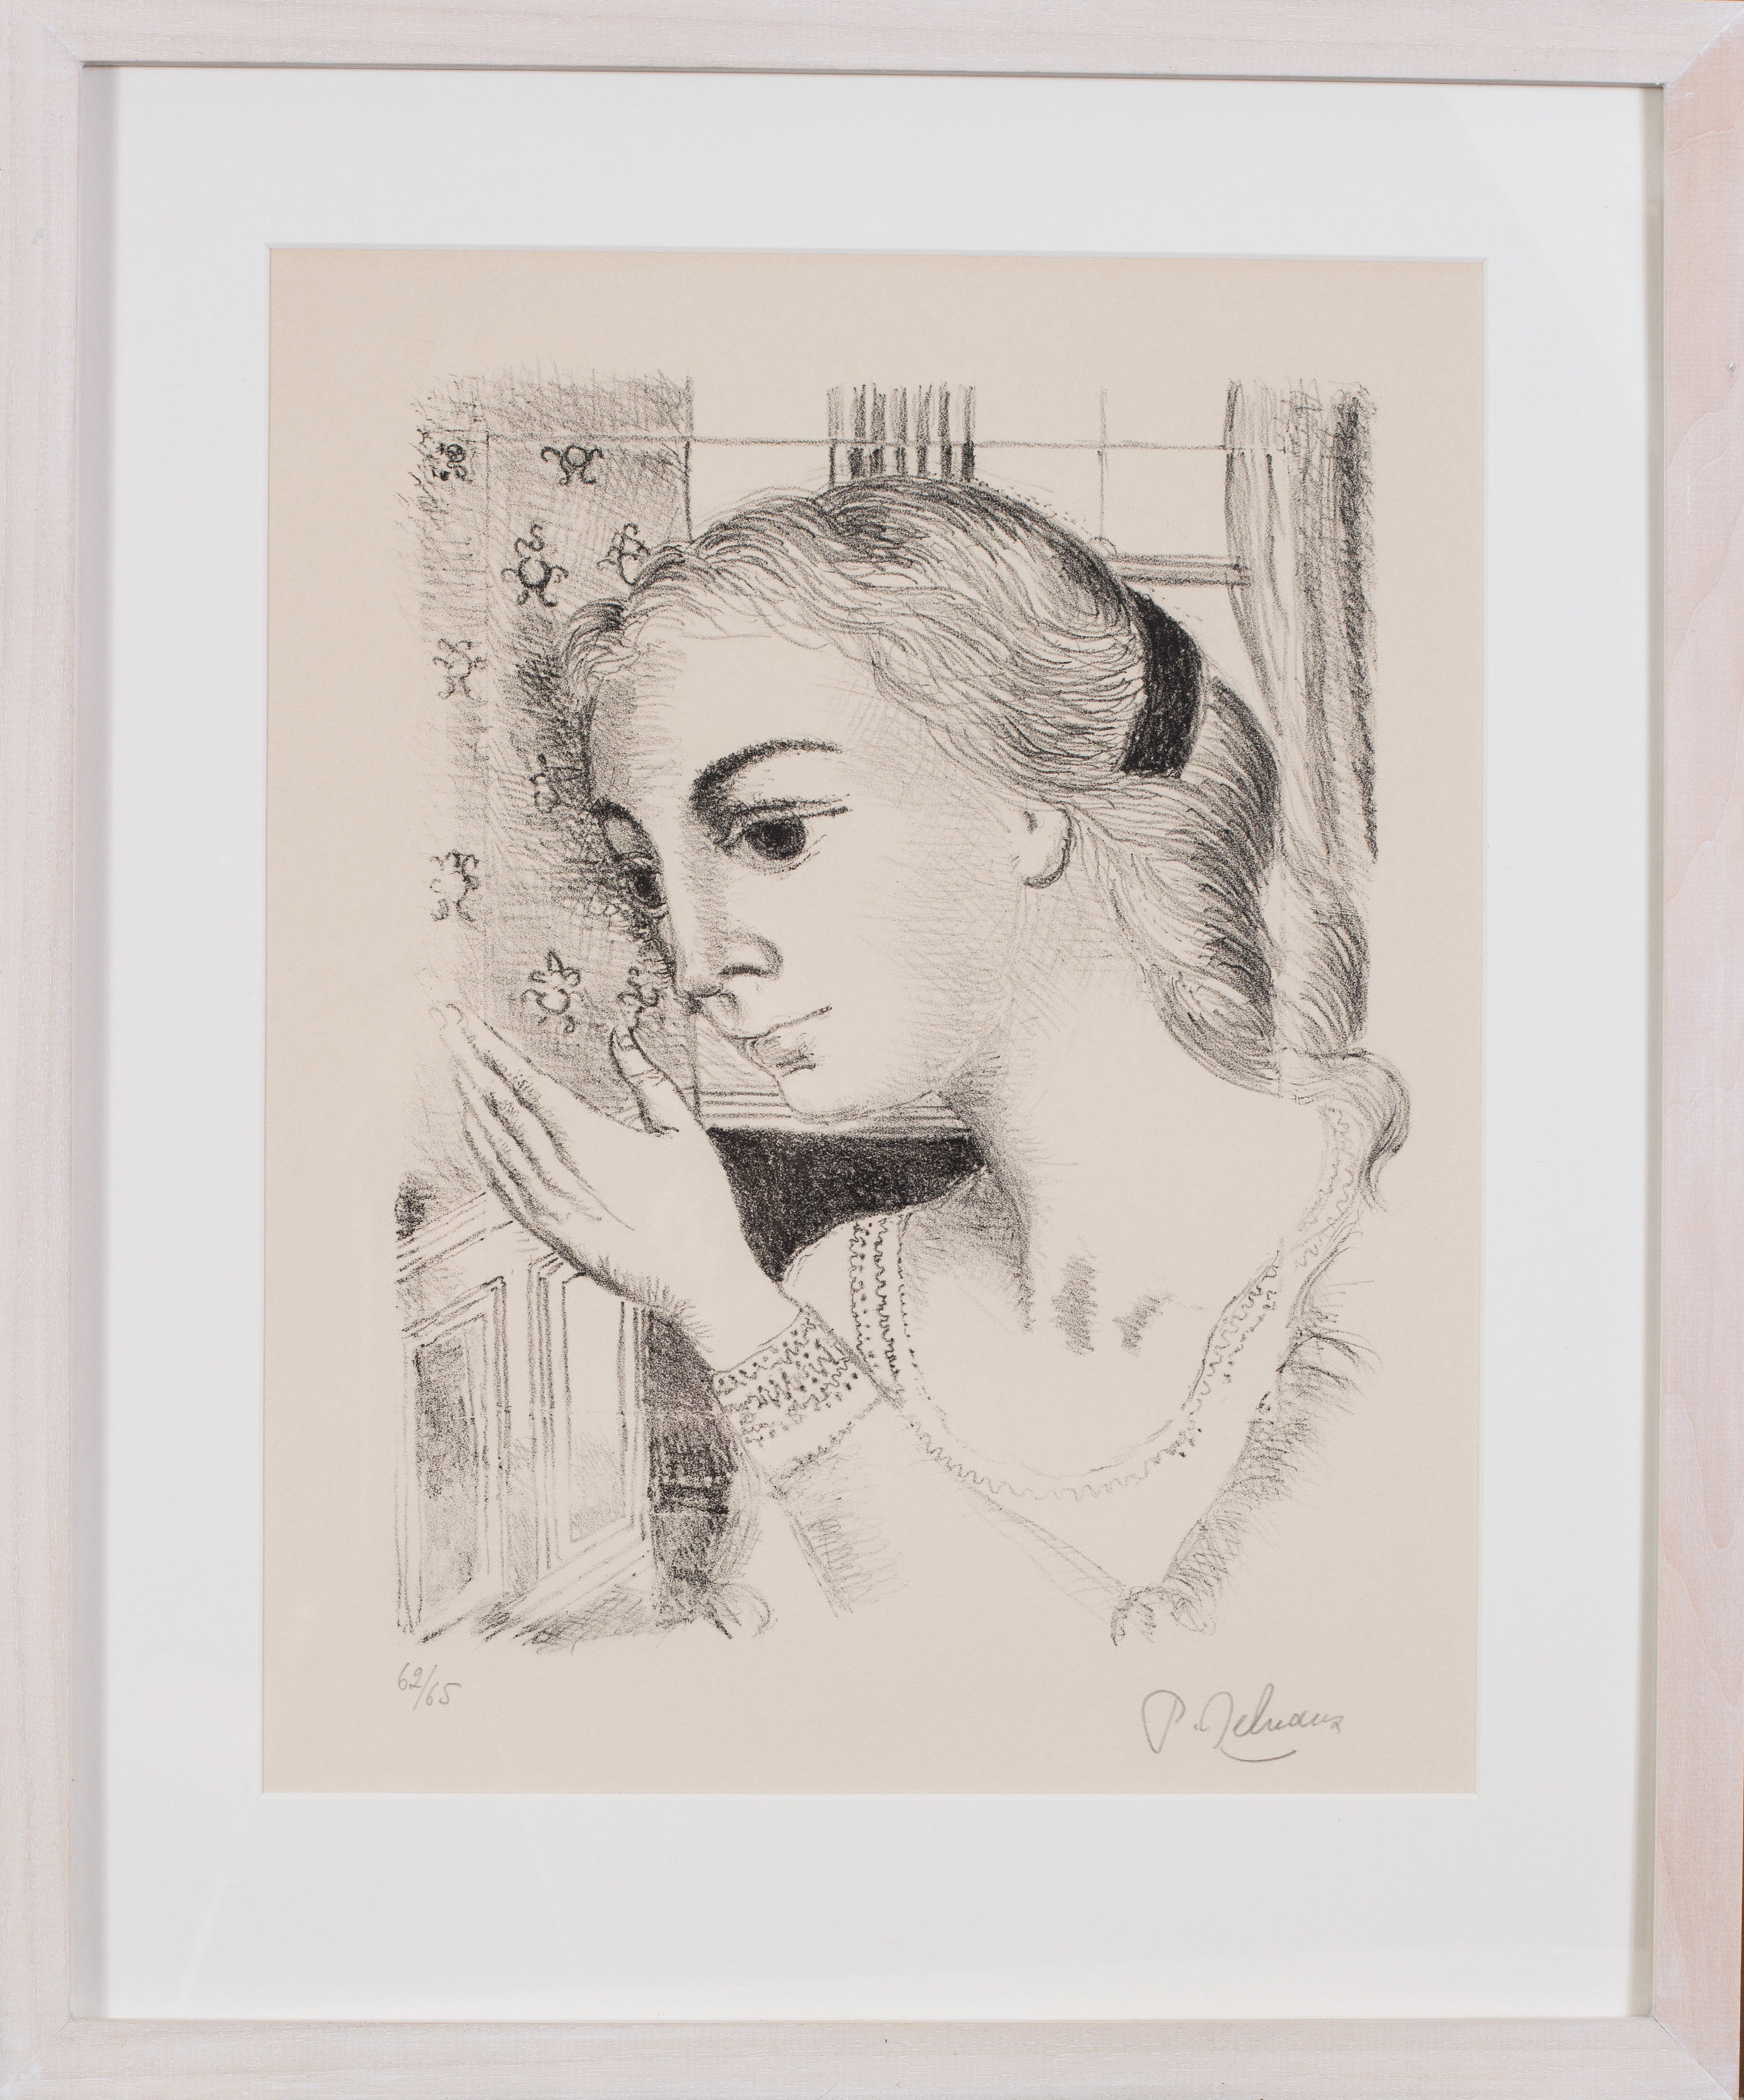 Paul Delvaux (Belgian, 1897 – 1994)    L'Imperatrice   Inscribed L'IMPERATRICE/7-74' (in the plate), signed and numbered in pencil 'XXXII/XXXV' (lower left), 'P. Delvaux' (lower right)  Lithograph 33.1/2 x 24.3/4in. (85 x 63cm.) (measured to slip edge)   Price: £1,900